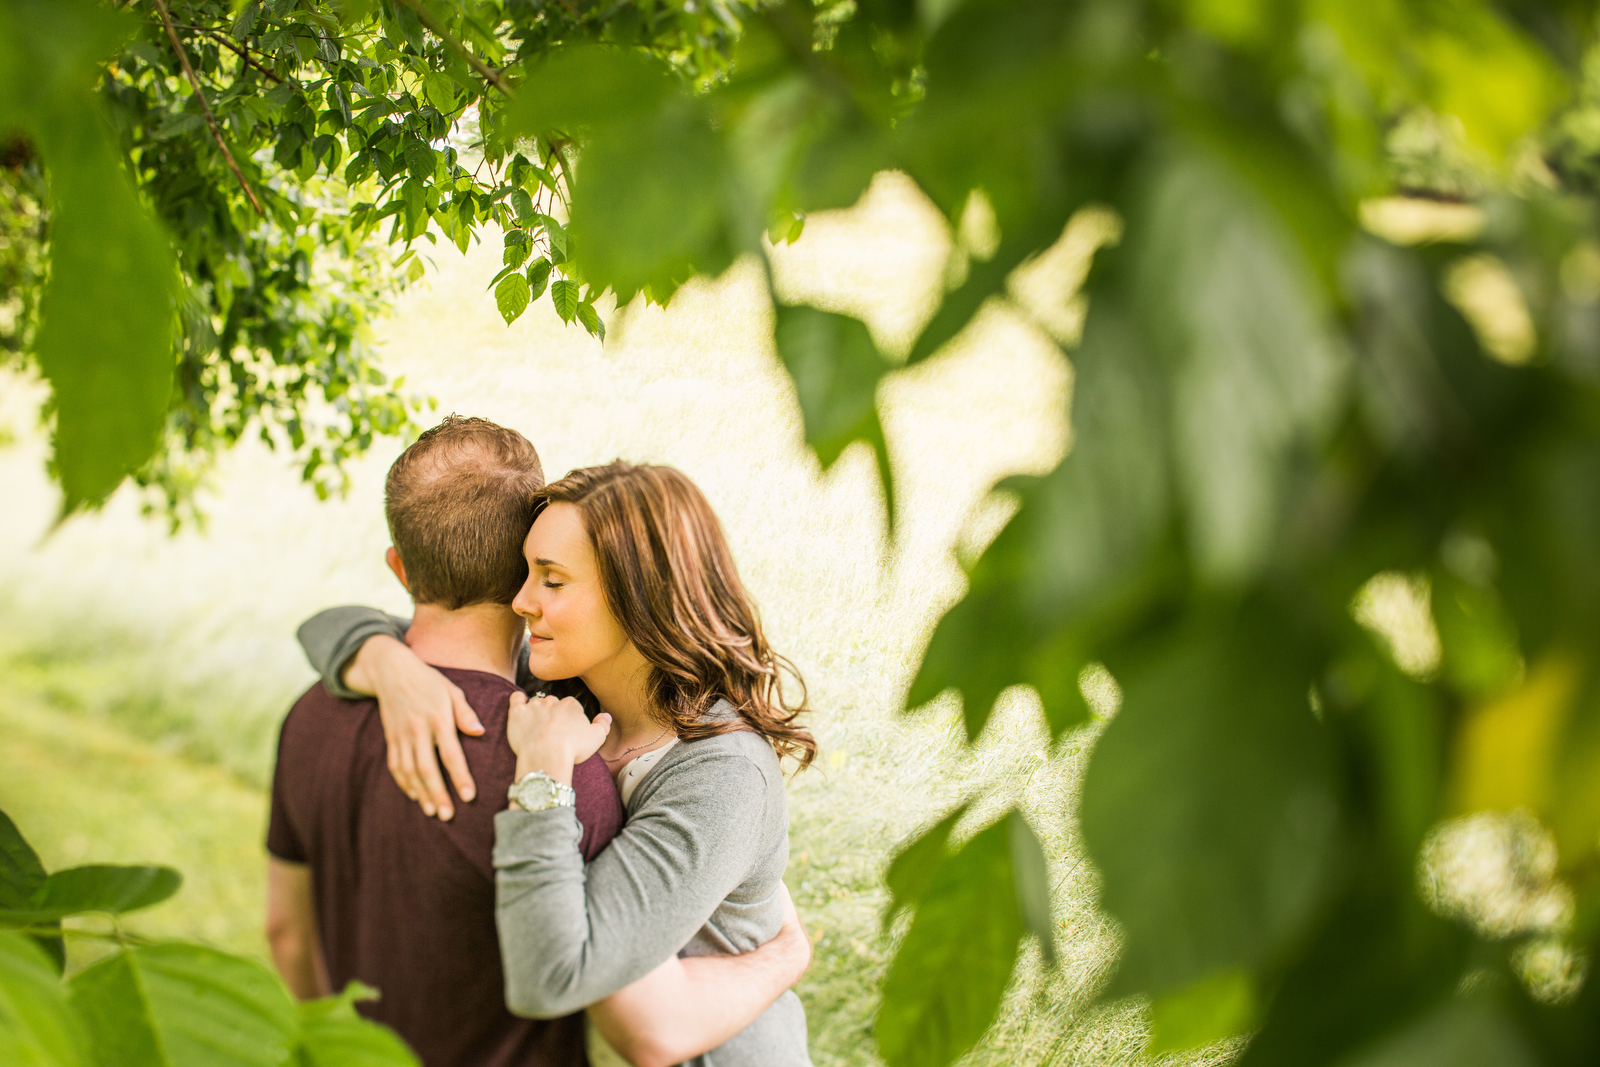 Tori Young and Steven Gillespie's romantic country engagement session at the Historic Riverview on the James in historic Lynchburg, Virginia.